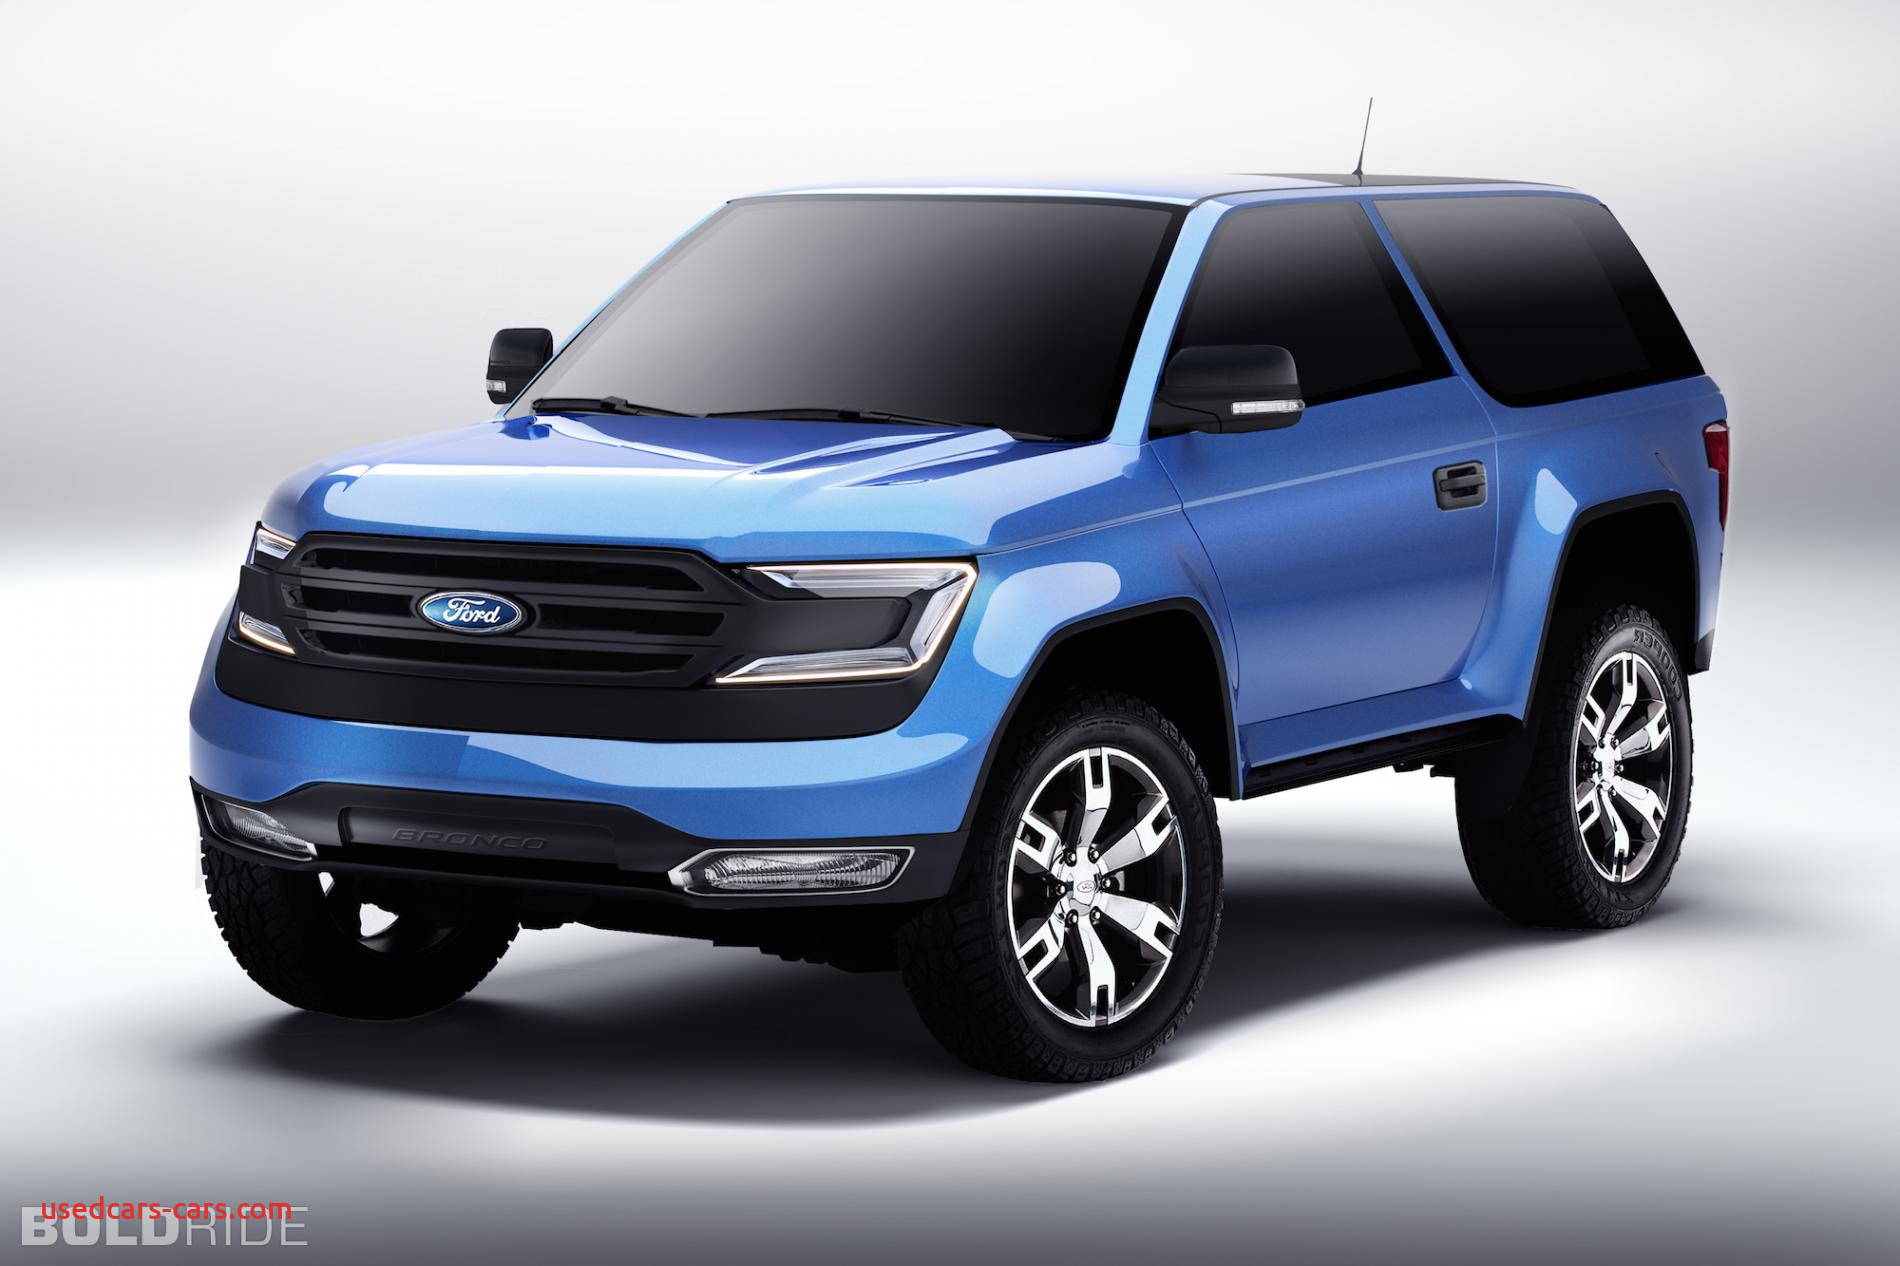 2020 ford Bronco V6 Elegant 20 Awesome the New ford Escape 2017